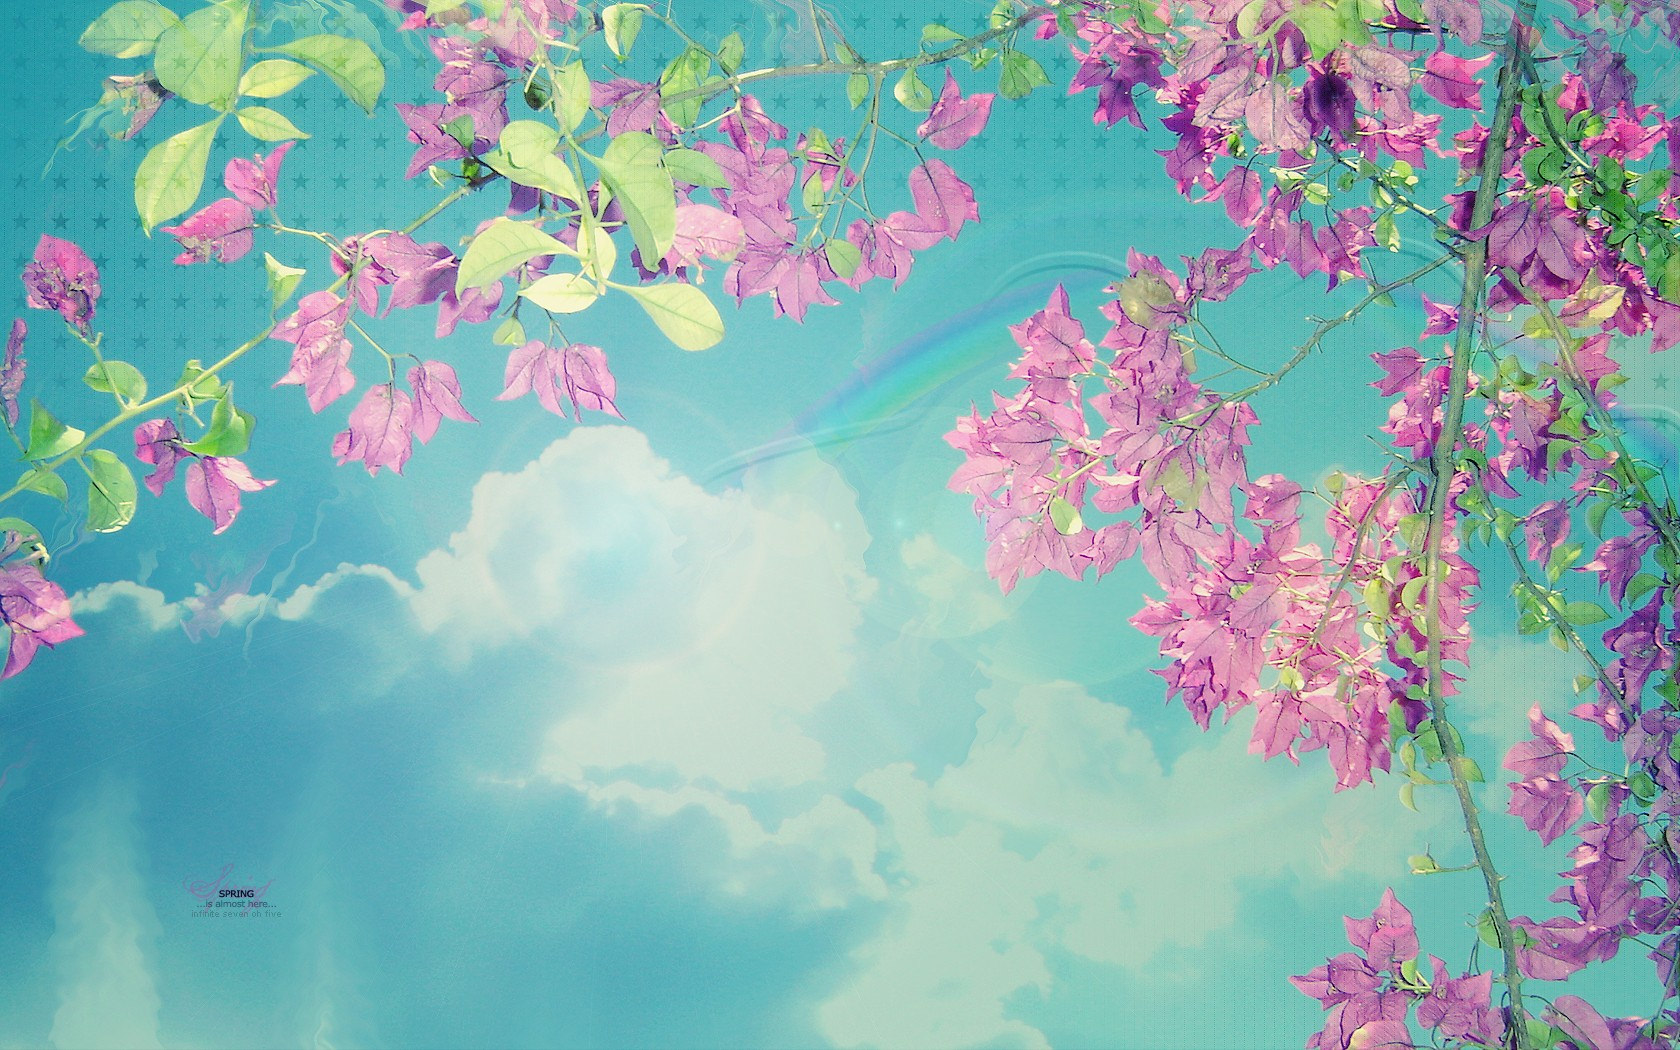 Spring Pink & Blue Skies Background